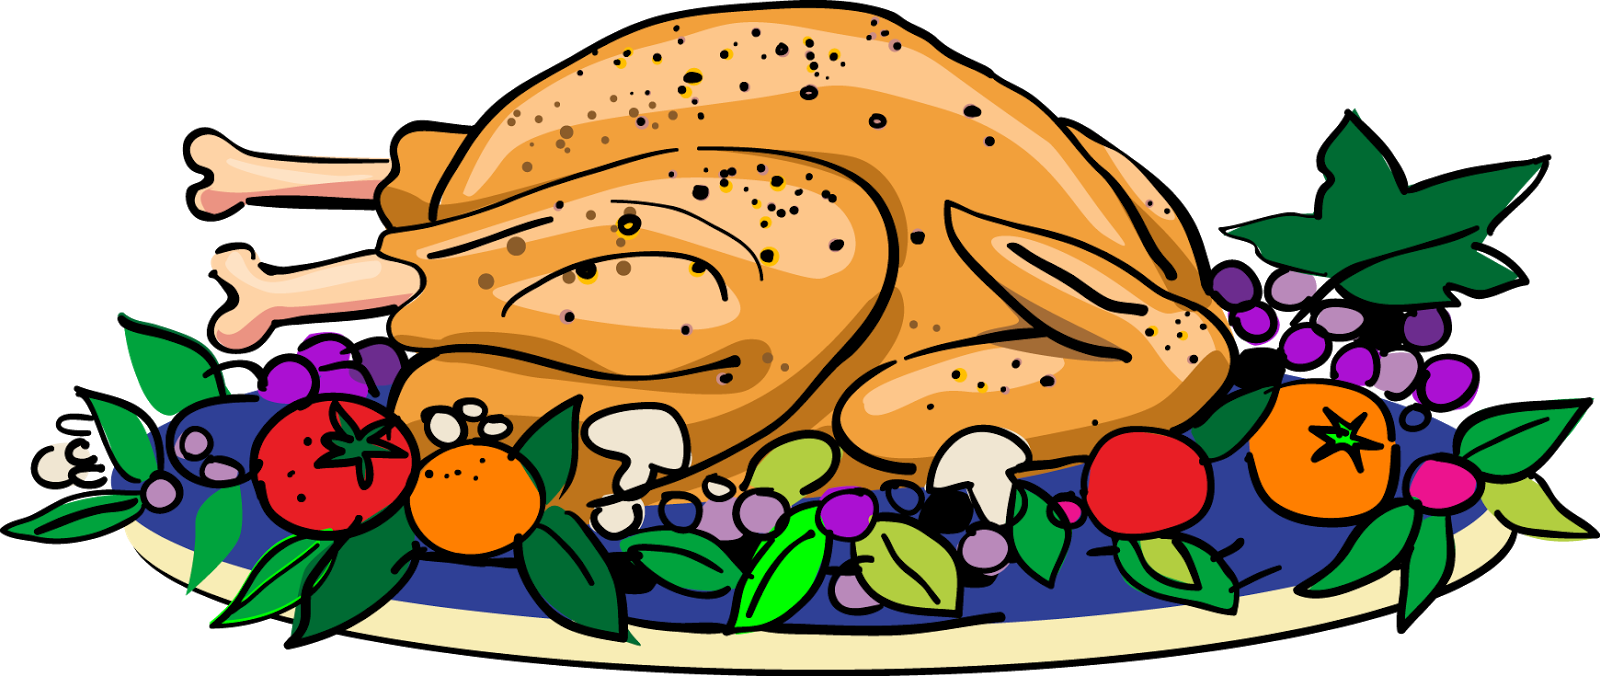 svg royalty free download Food x wallpaper. Brunch clipart thanksgiving